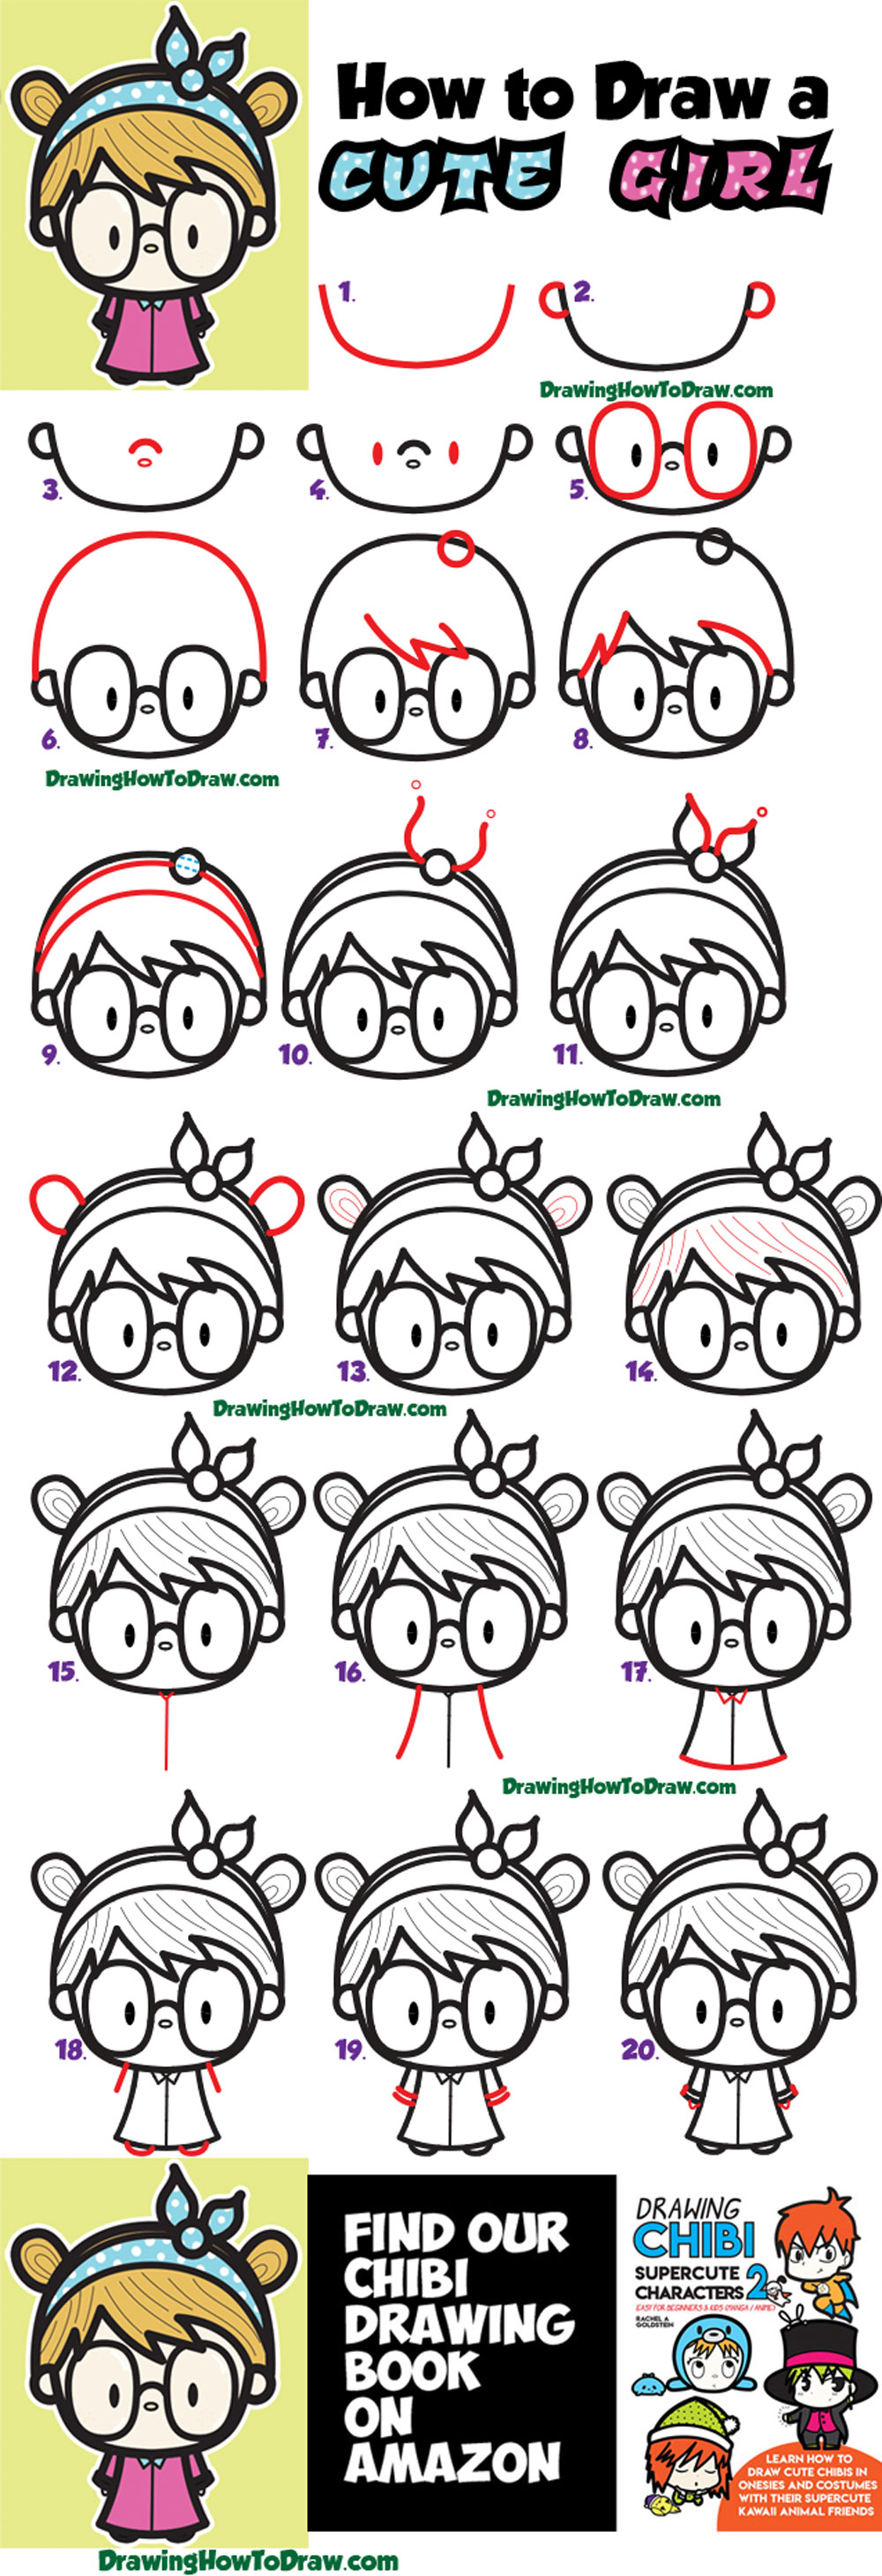 How To Draw A Cute Kawaii Girl With Buns Headband And Glasses